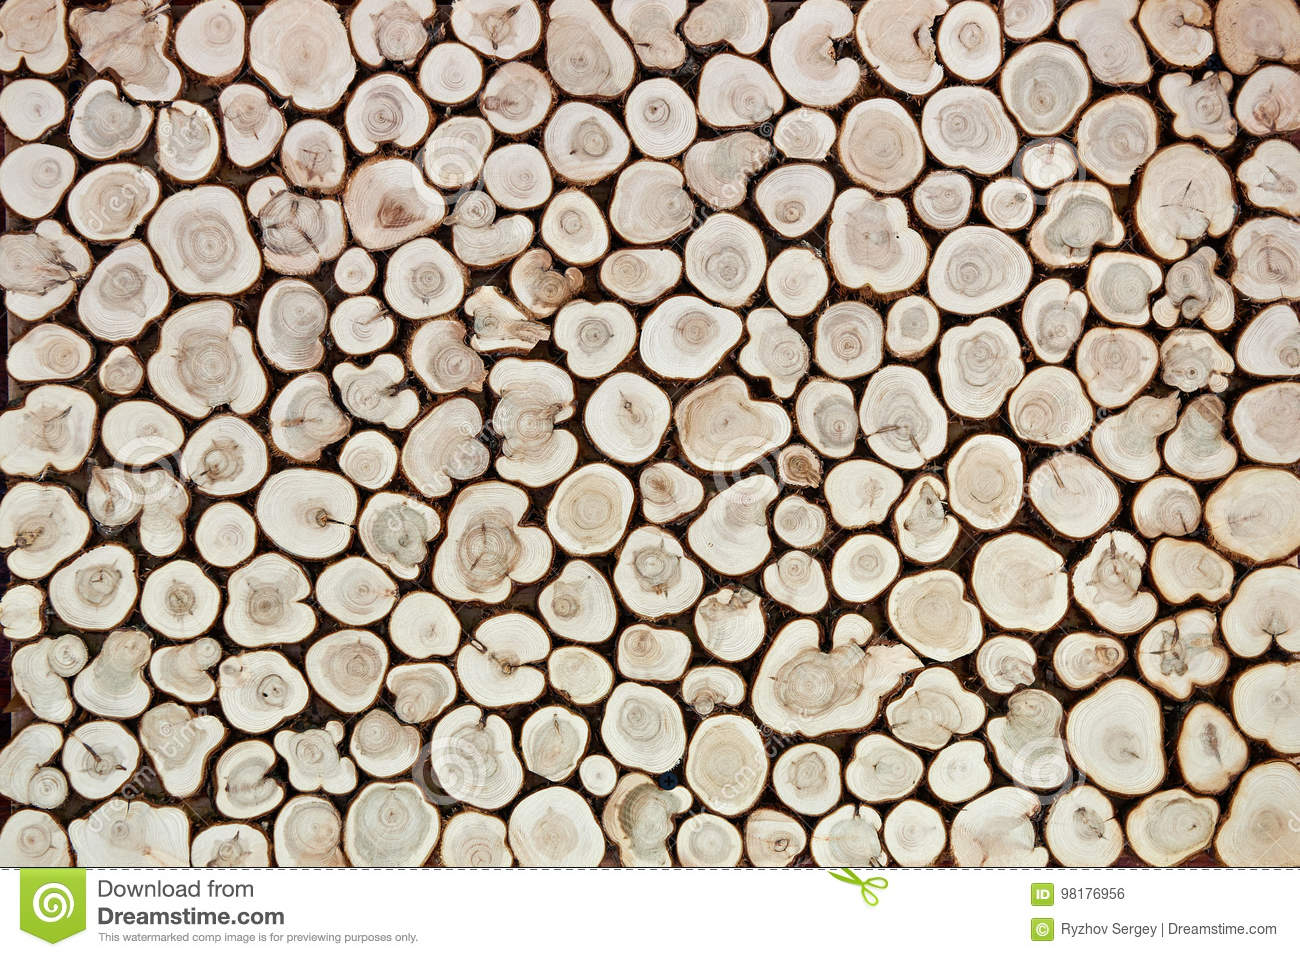 Background of wooden slices